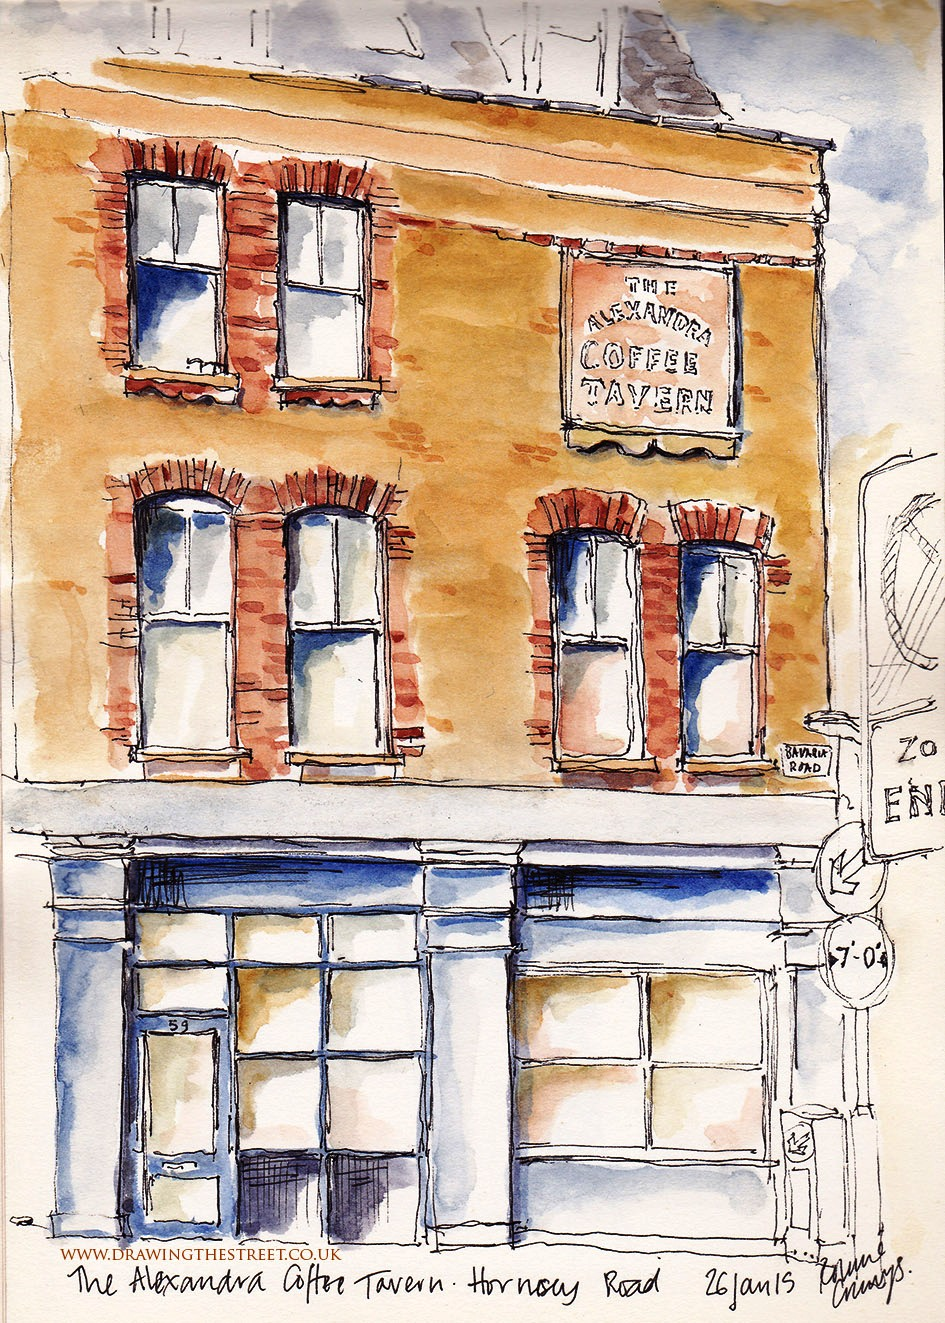 Sketch of the Alexandra Coffee tavern Bavaria Road